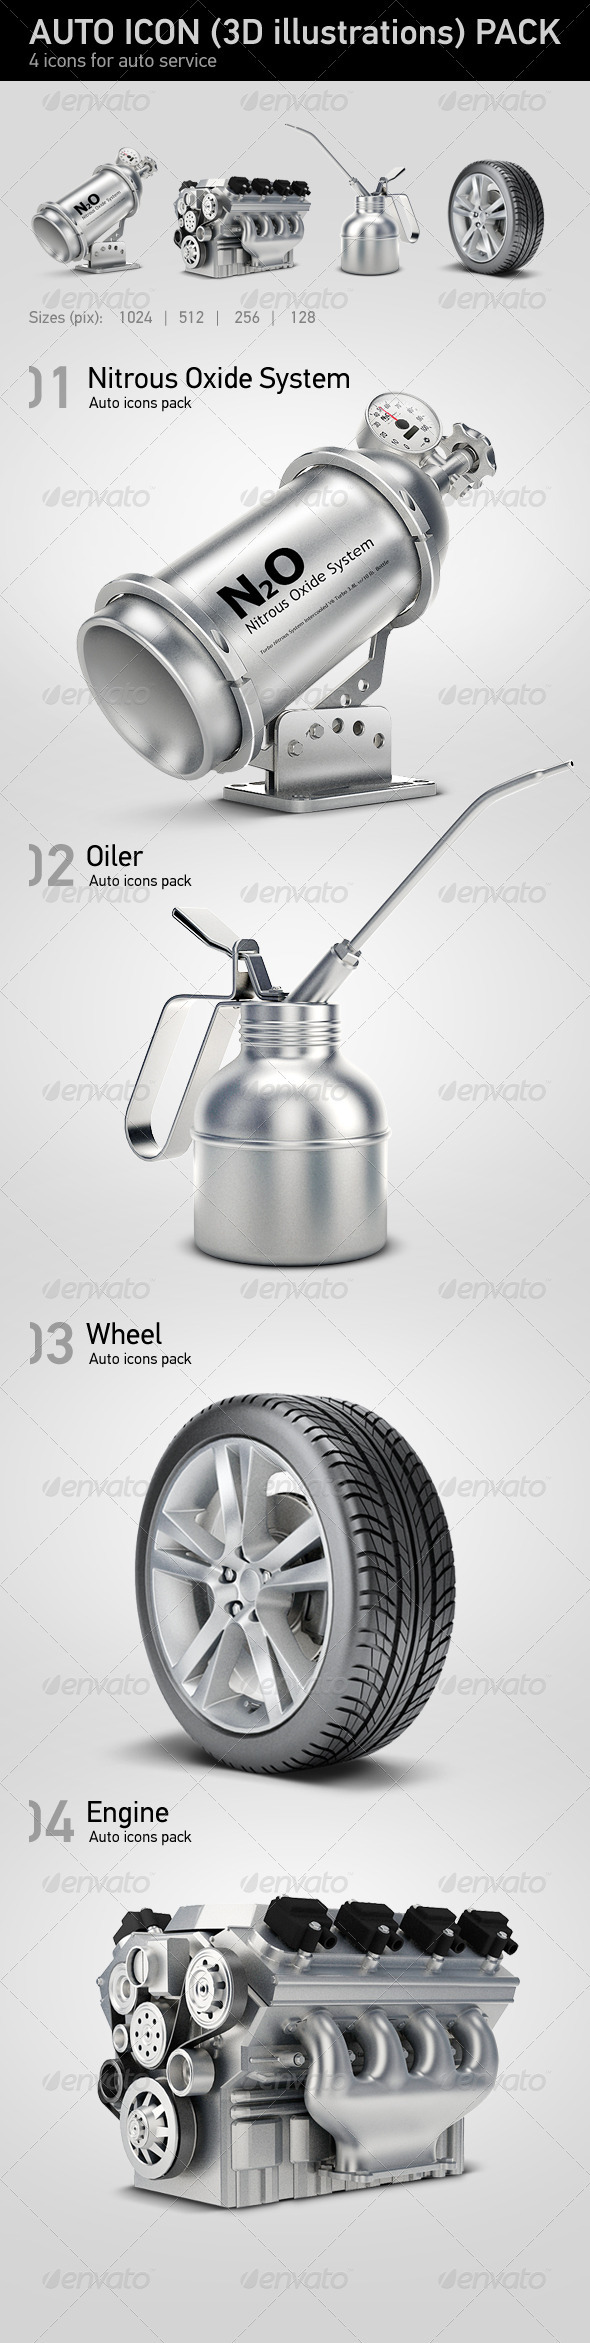 Graphic River 3D-auto-icons.jpg Icons -  Objects 549318